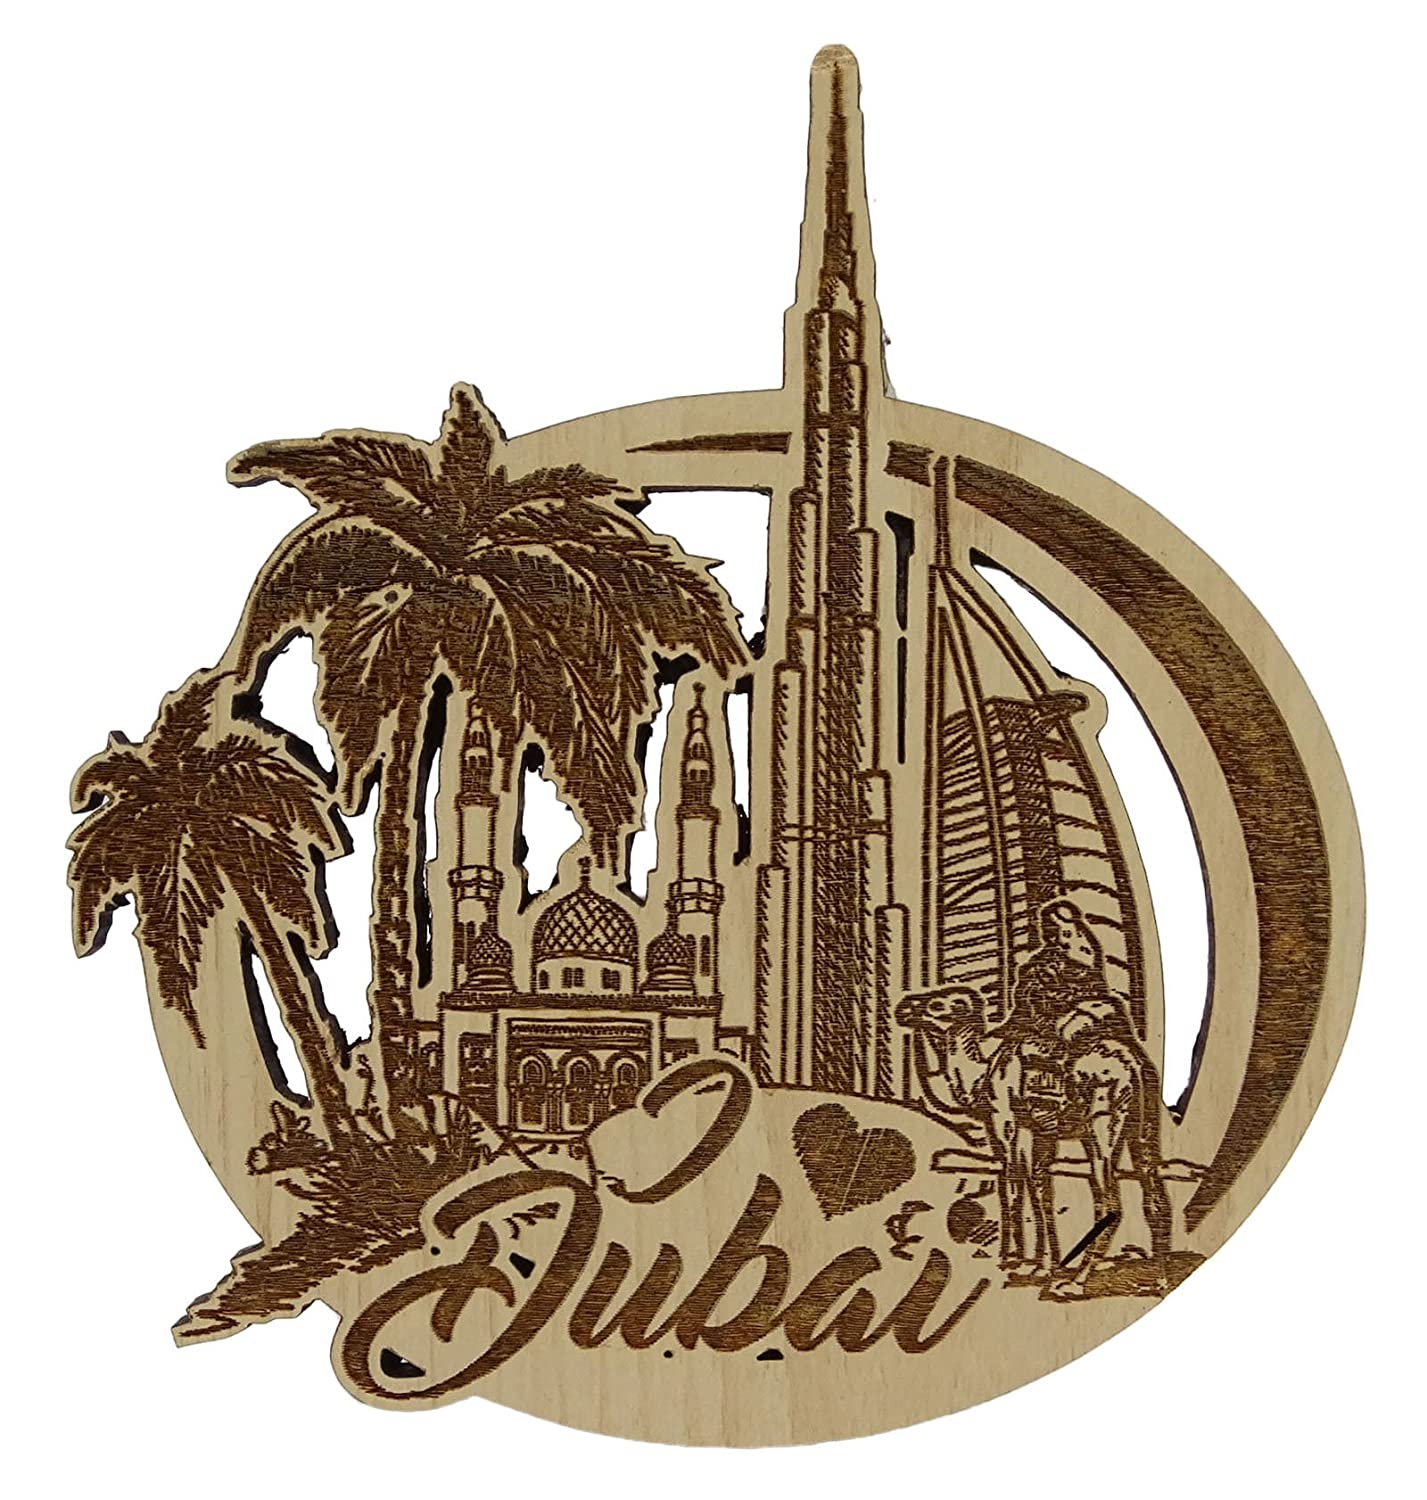 Dubai Wood Engraved Wooden Fridge Magnet Souvenir Gift